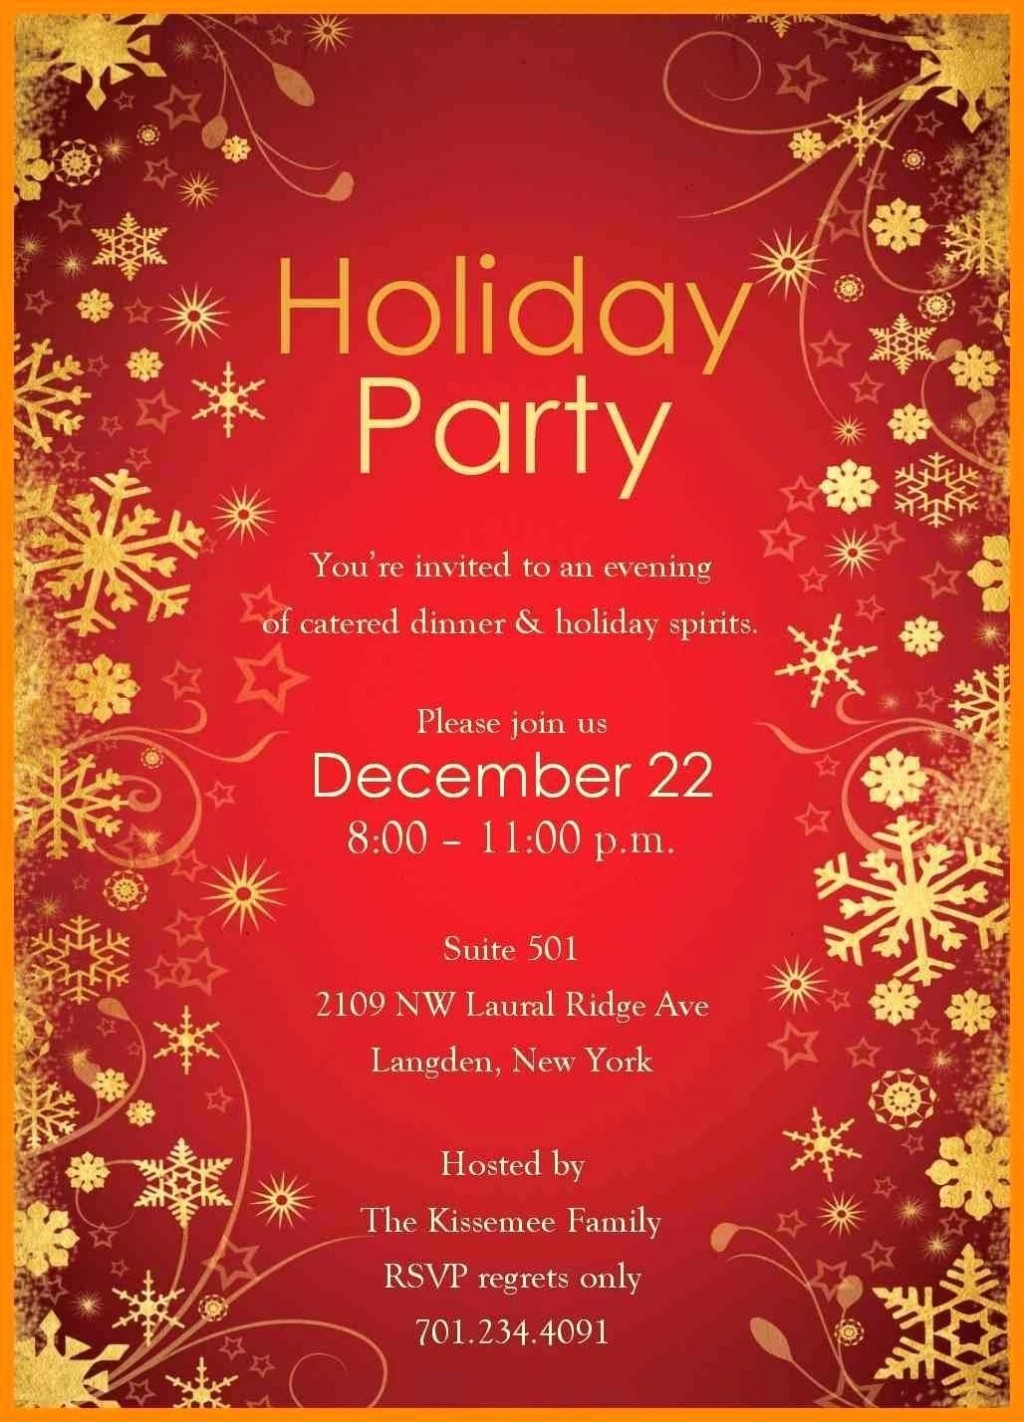 001 Top Free Holiday Party Flyer Template Word High Resolution Large